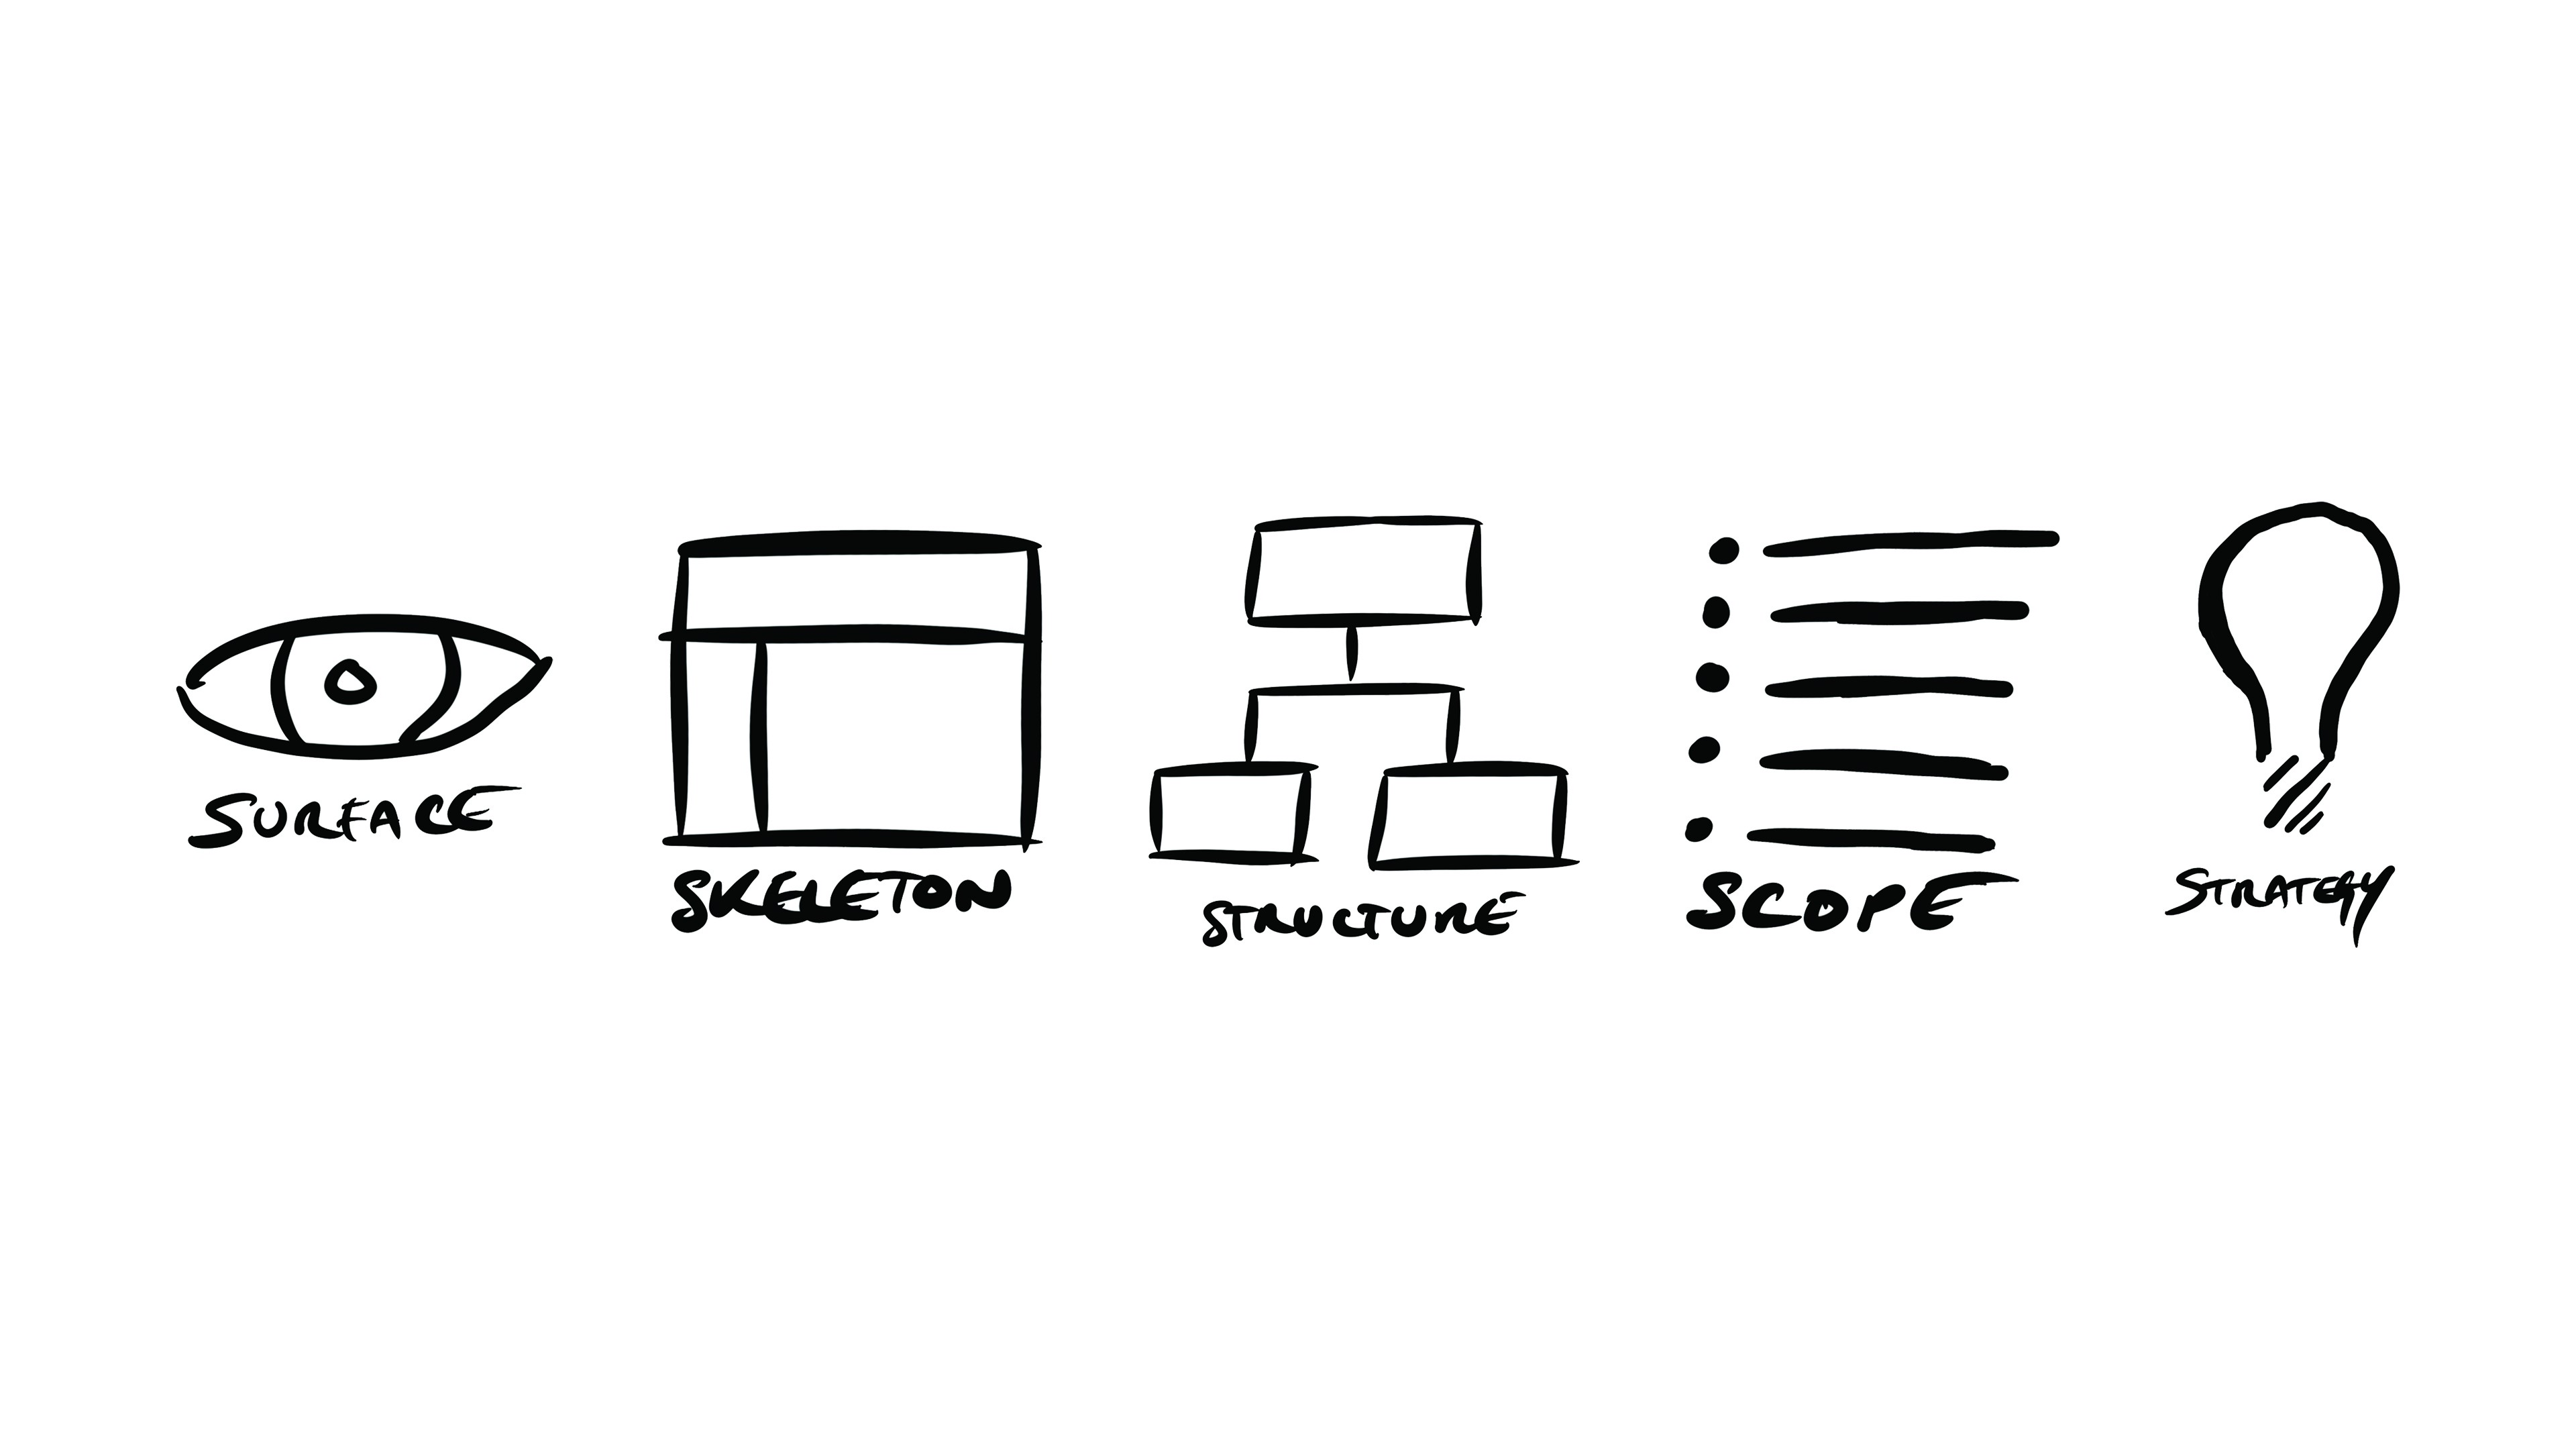 The Five Planes Of Ux Design Exploring The Core Concepts Of By Jaymie Gill Jaymie Gill Medium